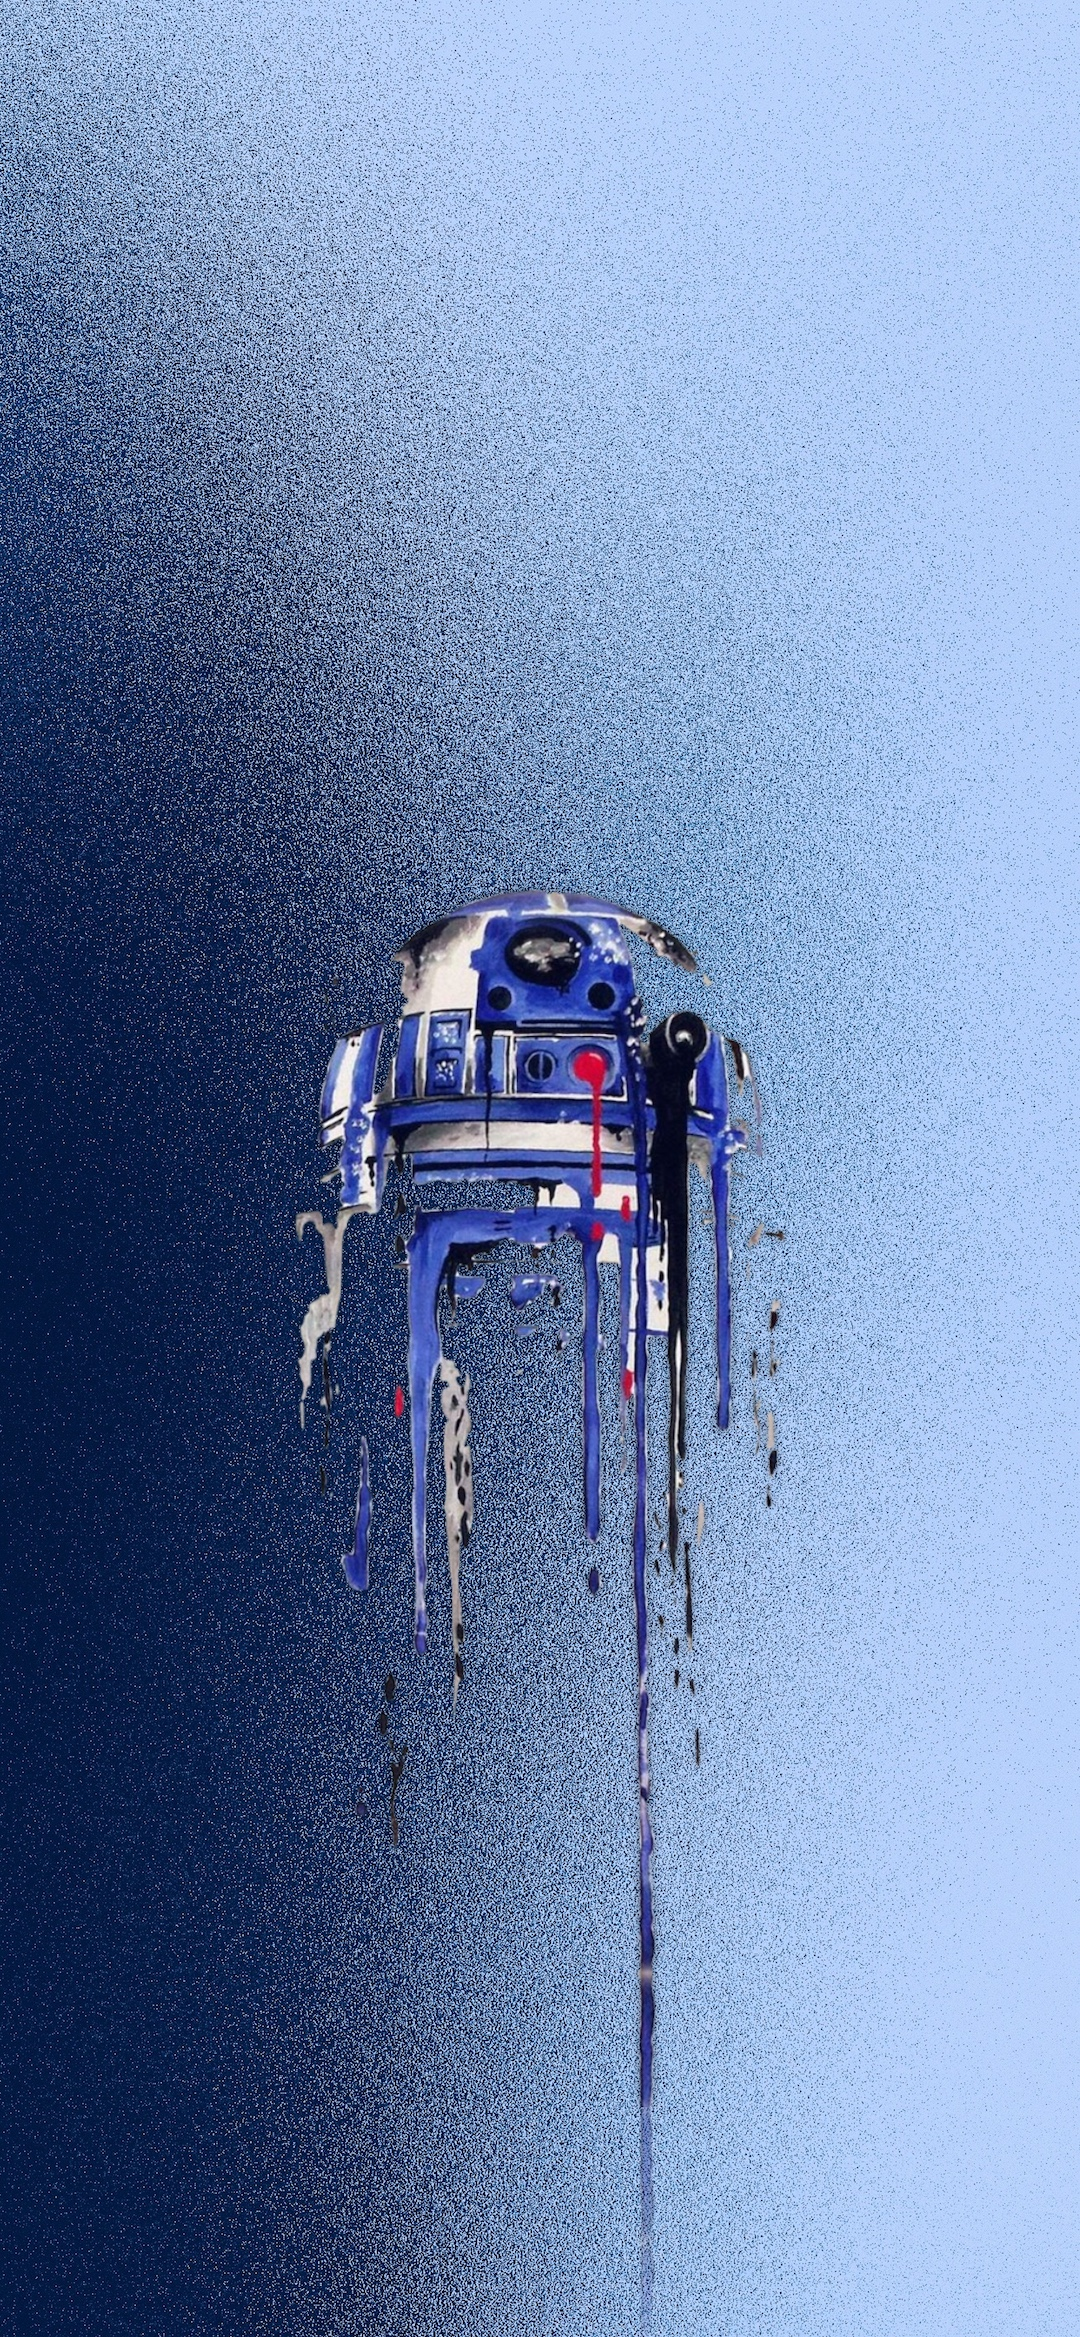 R2d2 star wars iphone X wallpaper by iamjoeya